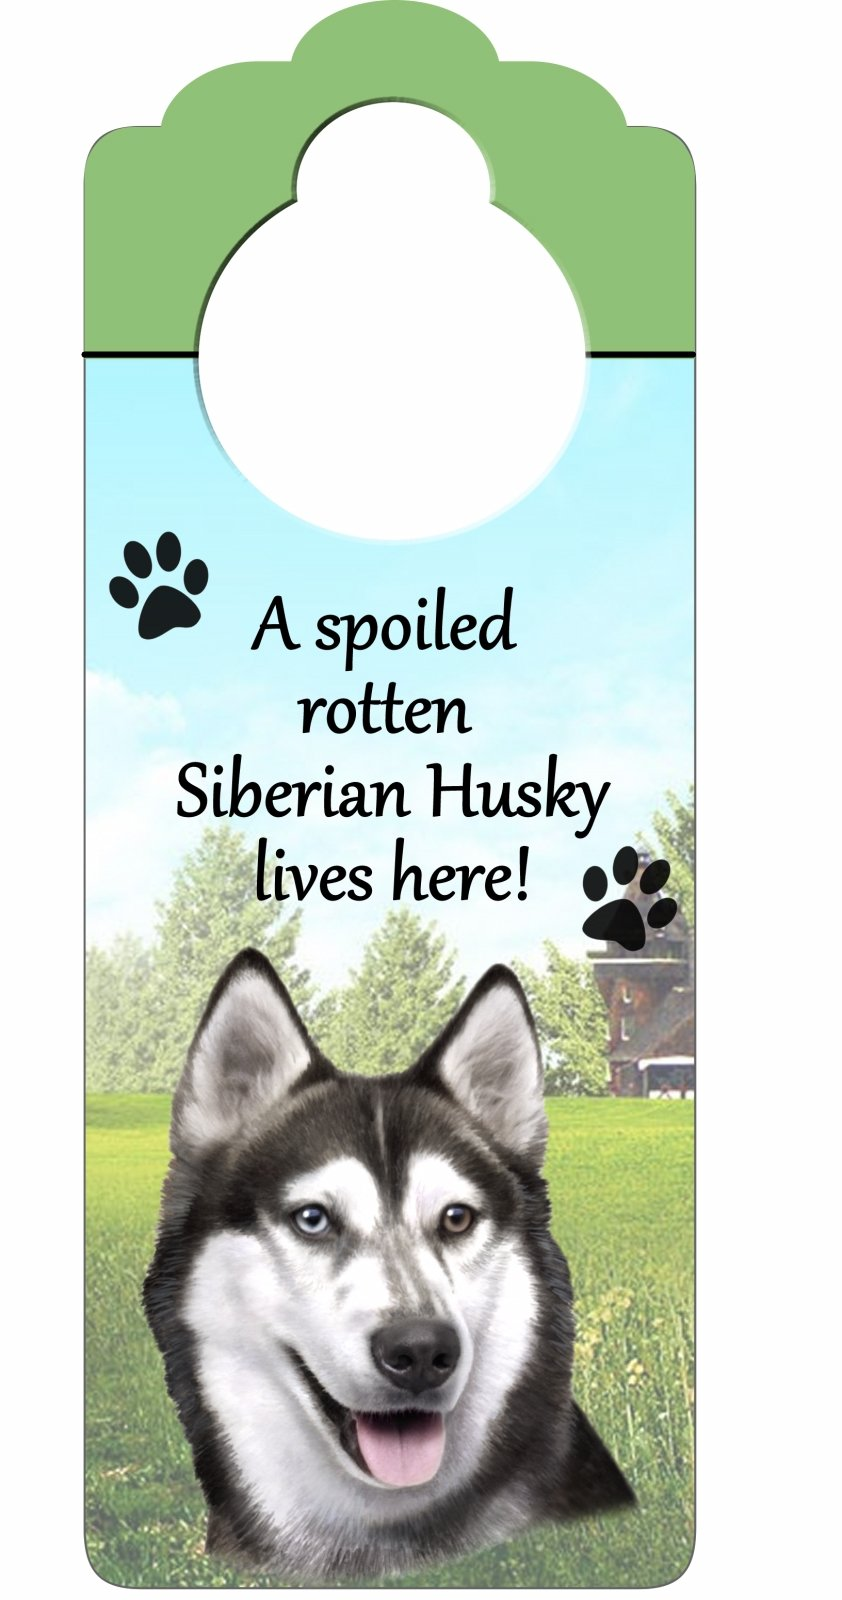 E&S Pets Siberian Husky Wood Sign A Spoiled Rotten Siberian Husky Lives Here with Artistic Photograph Measuring 10 by 4 Inches Can Be Hung On Doorknobs Or Anywhere In Home